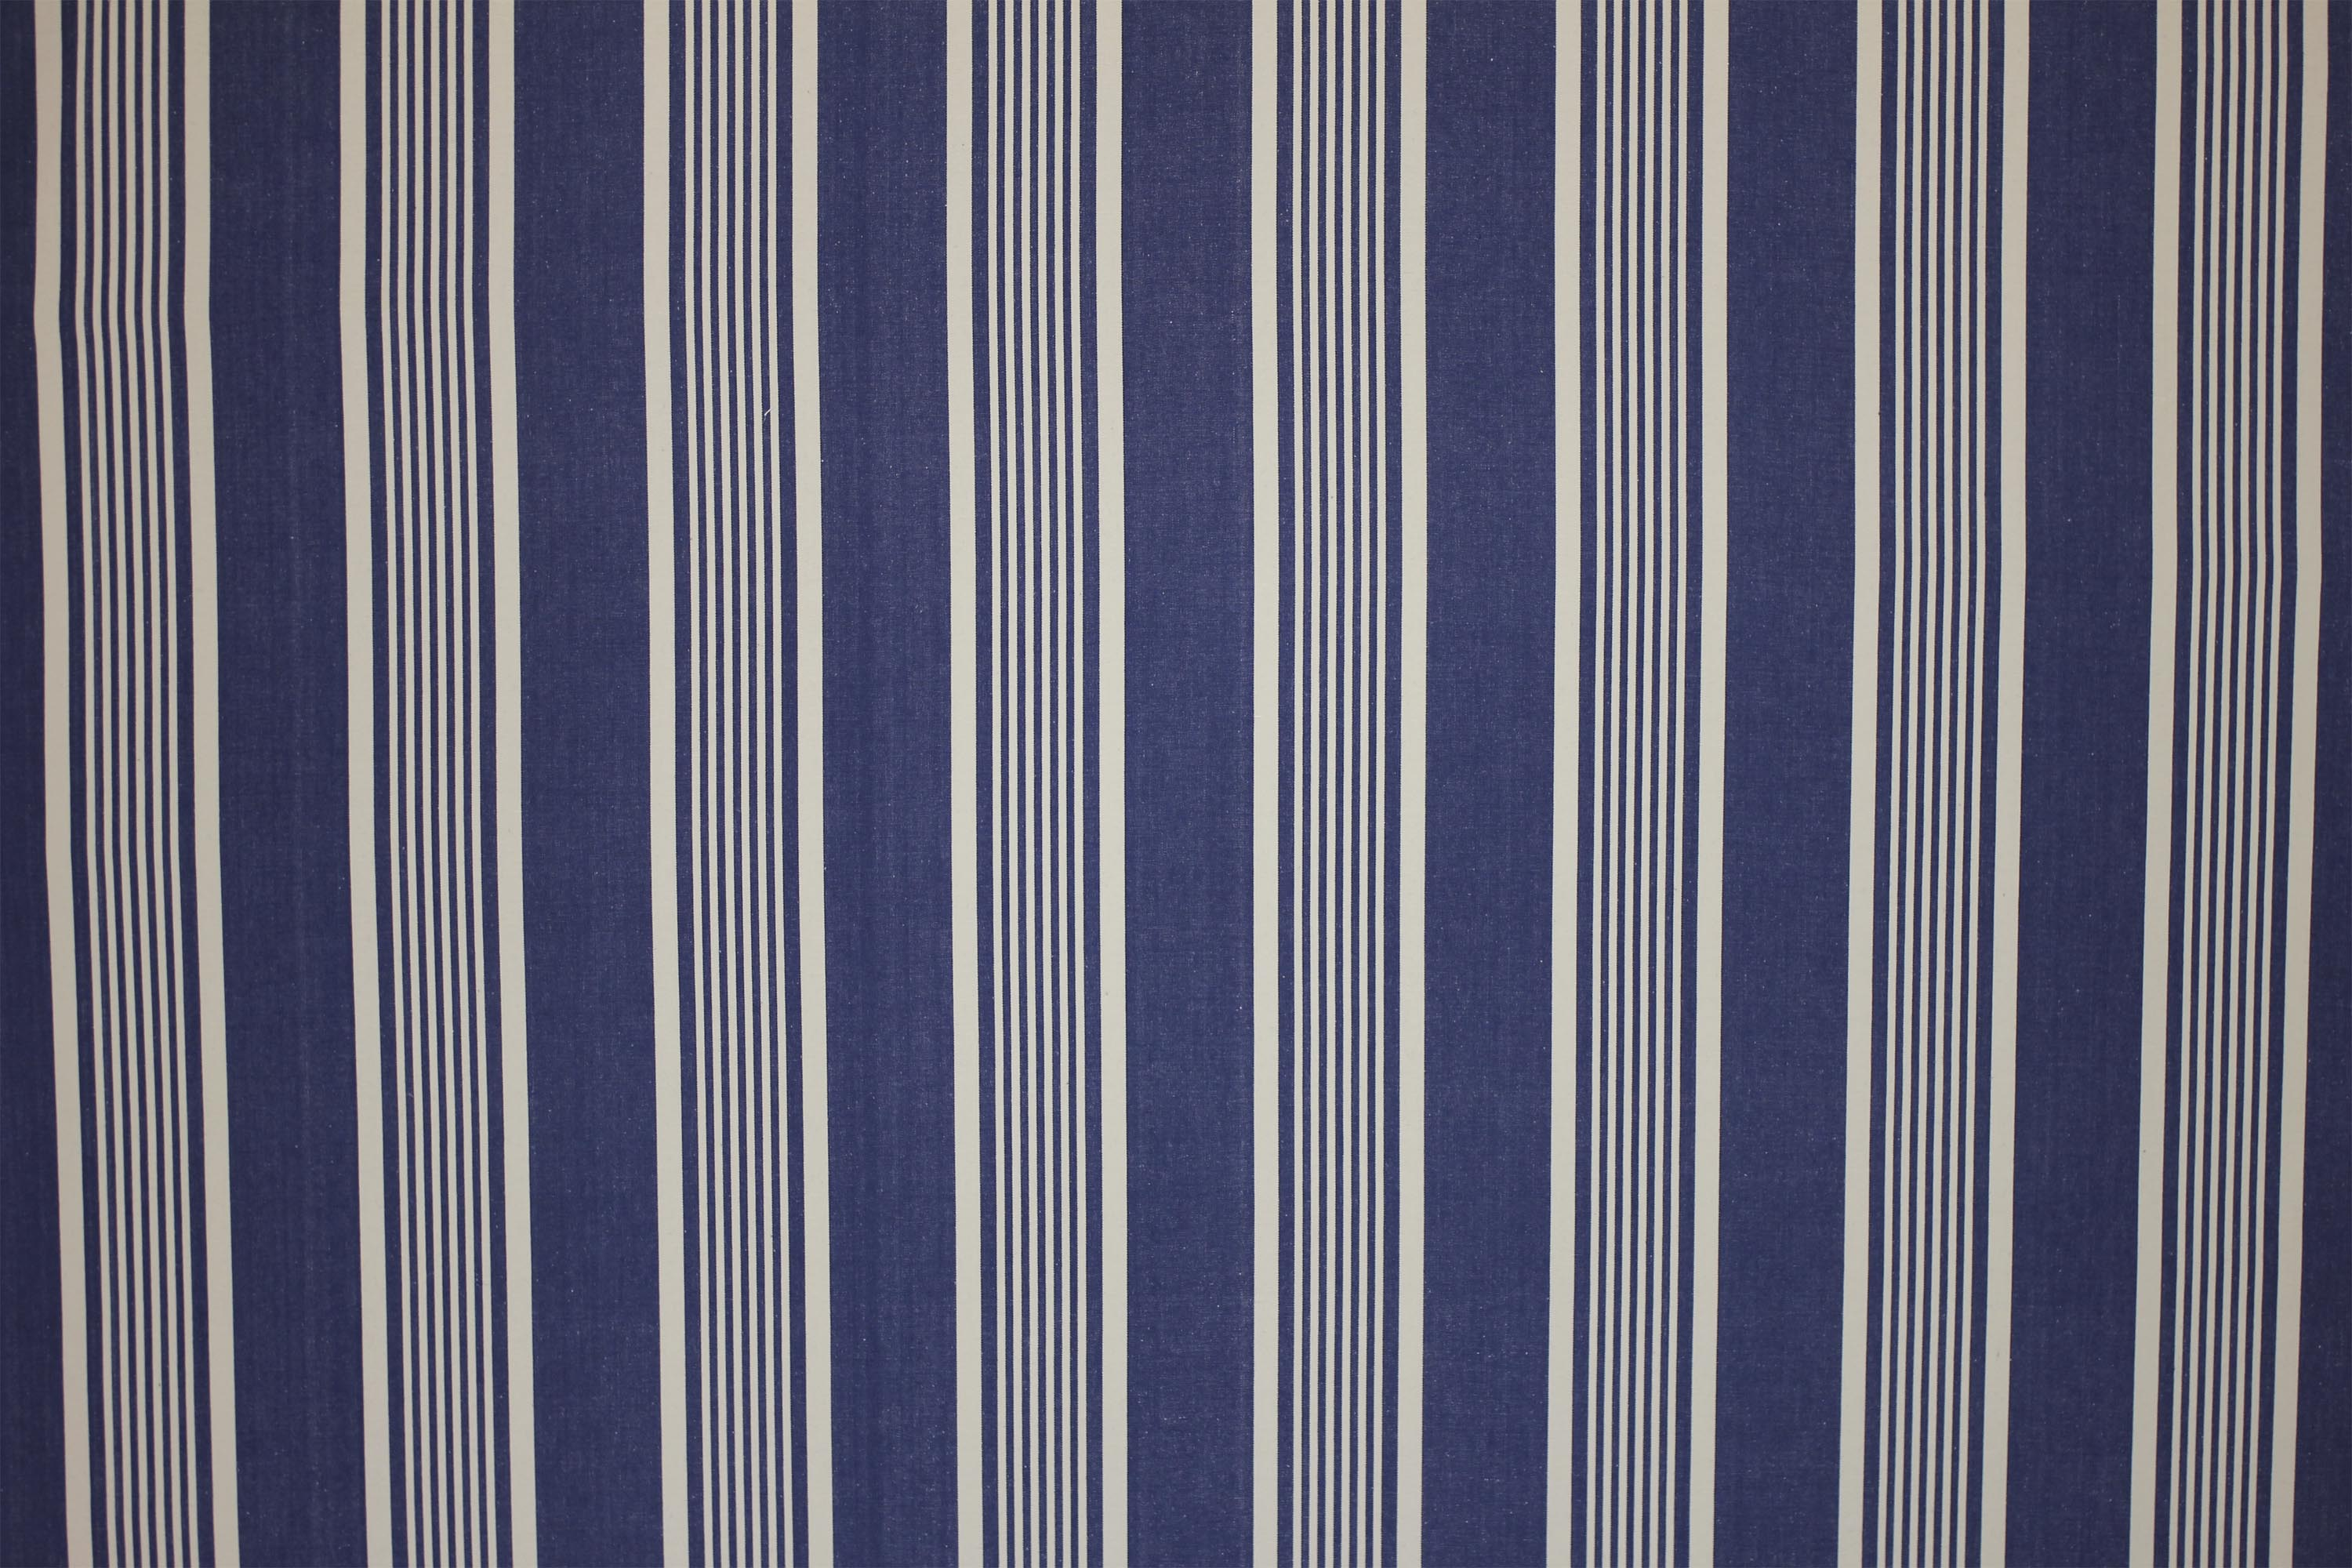 Snowboarding Navy Blue Striped Fabric | The Stripes Company United ...